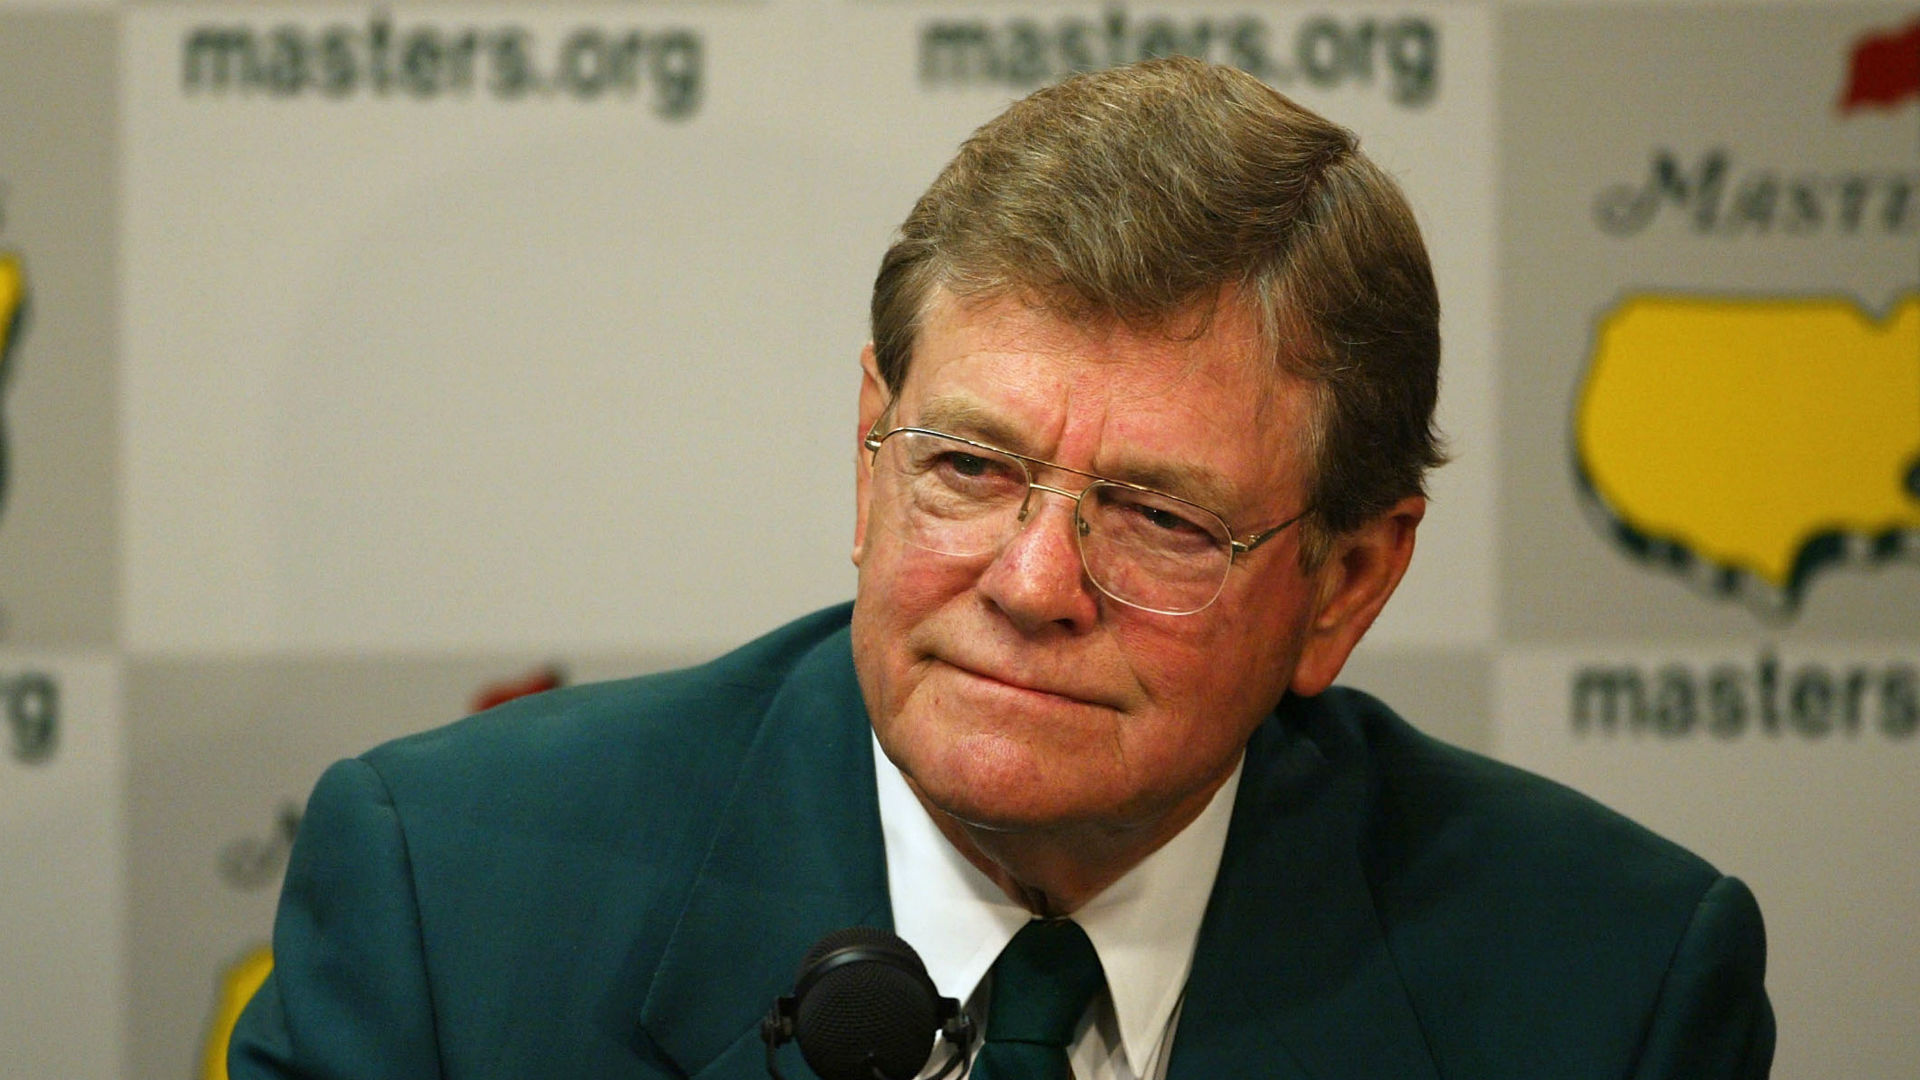 Former Augusta National Chairman 'Hootie' Johnson dies at 86